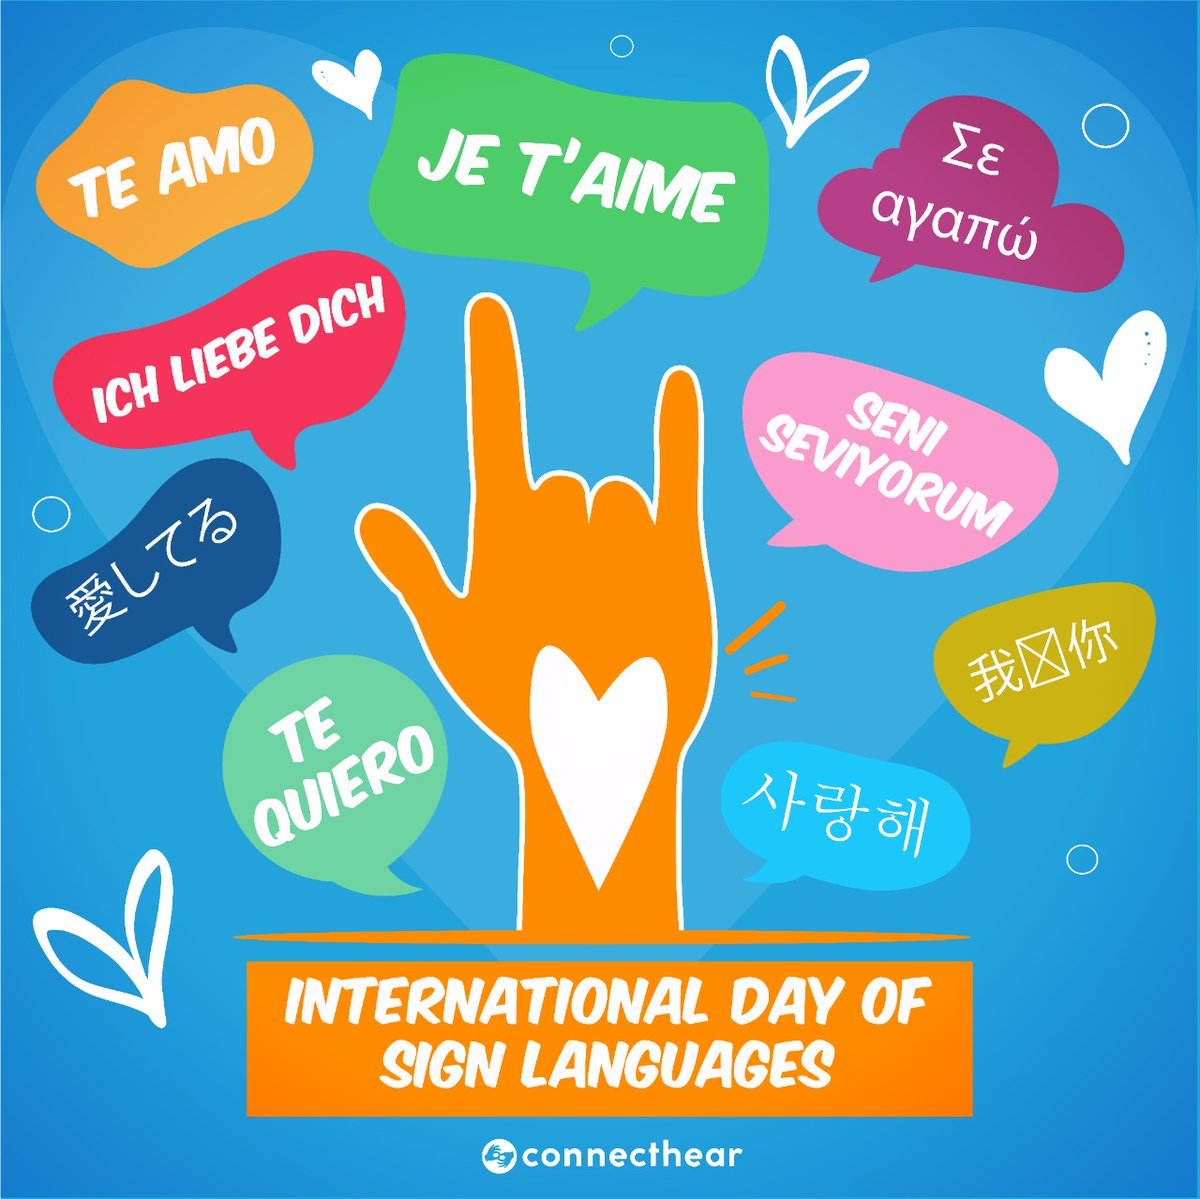 We are celebrating #IDSL2020 with Deaf communities across the world! 🤟🌎  This year's theme focuses on the Human Rights of Deaf People. We recognise sign language, promote deaf community and culture, encourage deaf inclusion and raise awareness for companies to support the deaf. https://t.co/iGyrDyrKwc